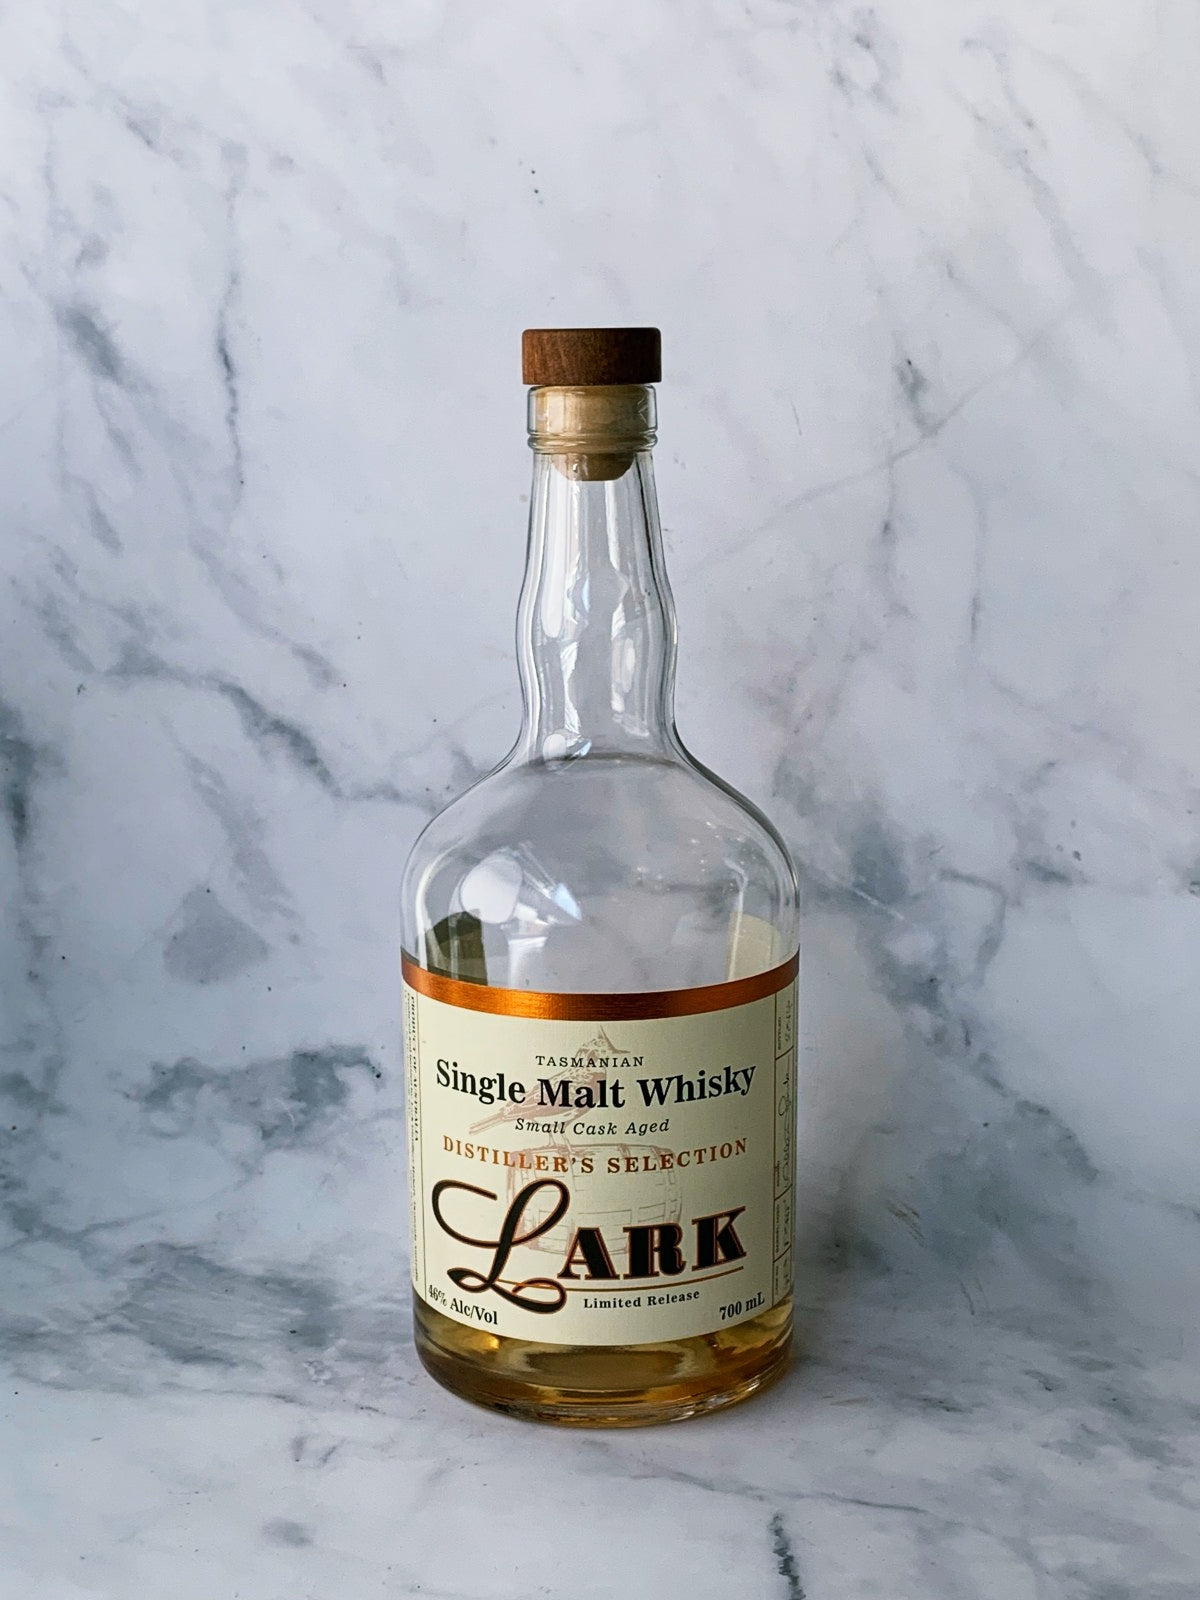 Lark Distillers Selection Single Malt Whisky (50ml serve)